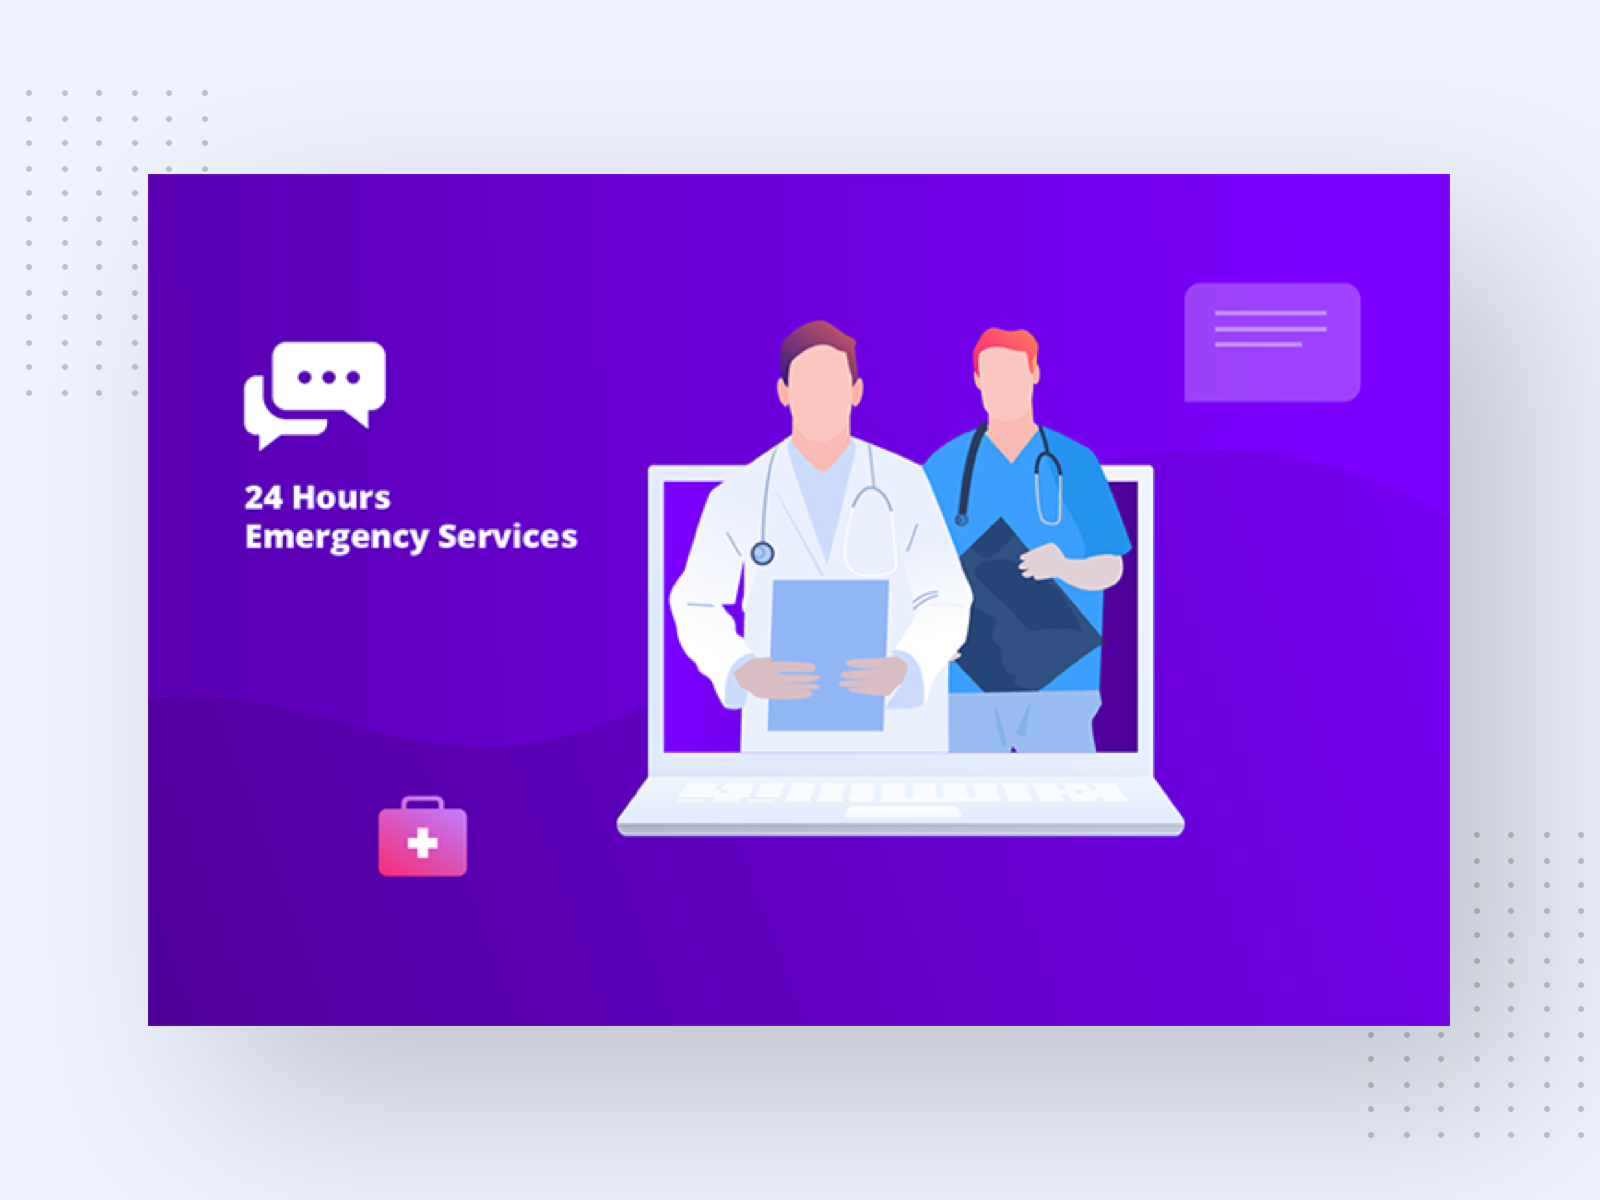 Emergency Medical Service Illustration Free Vector By Takeui On Dribbble